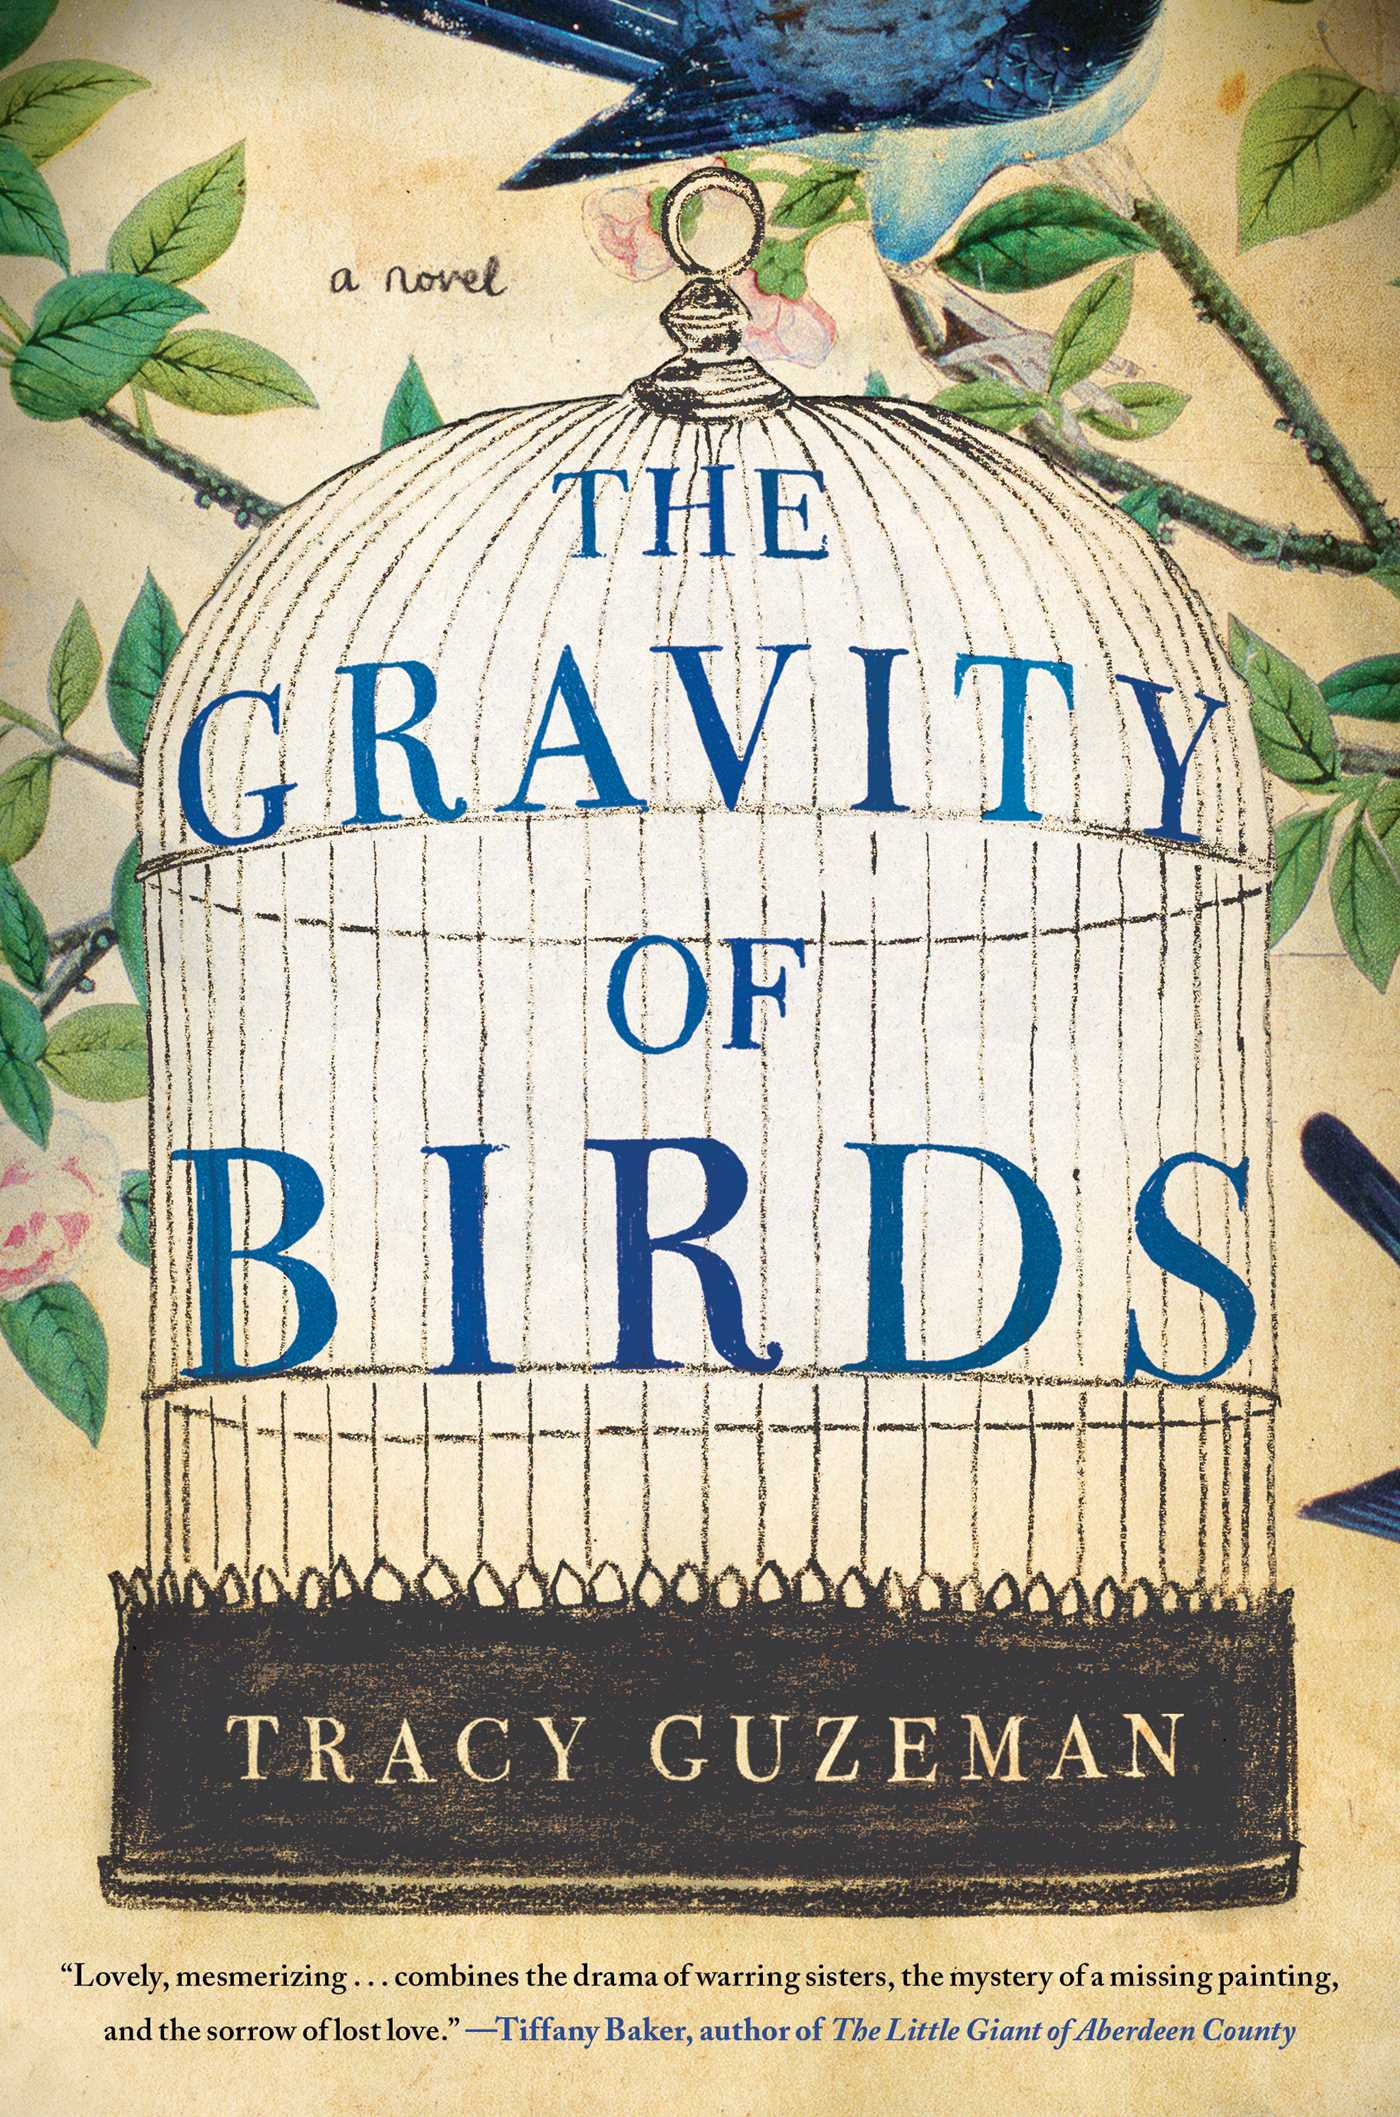 The gravity of birds 9781451689785 hr